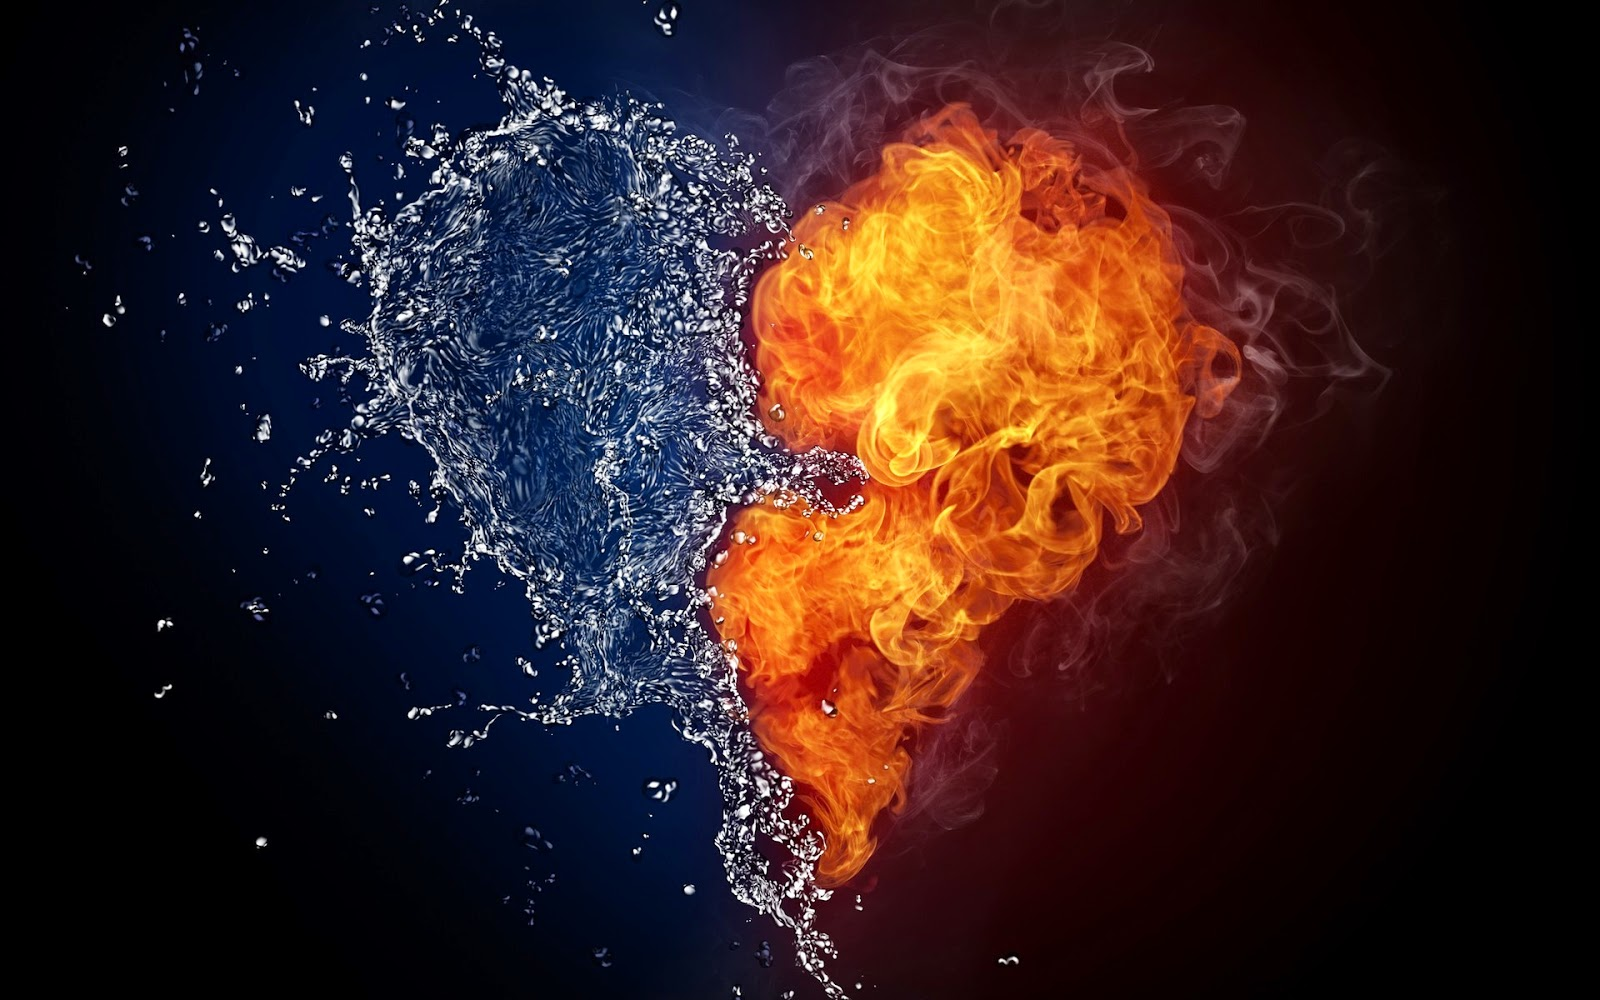 fire-and-water-heart-love-wallpapers-hdlove